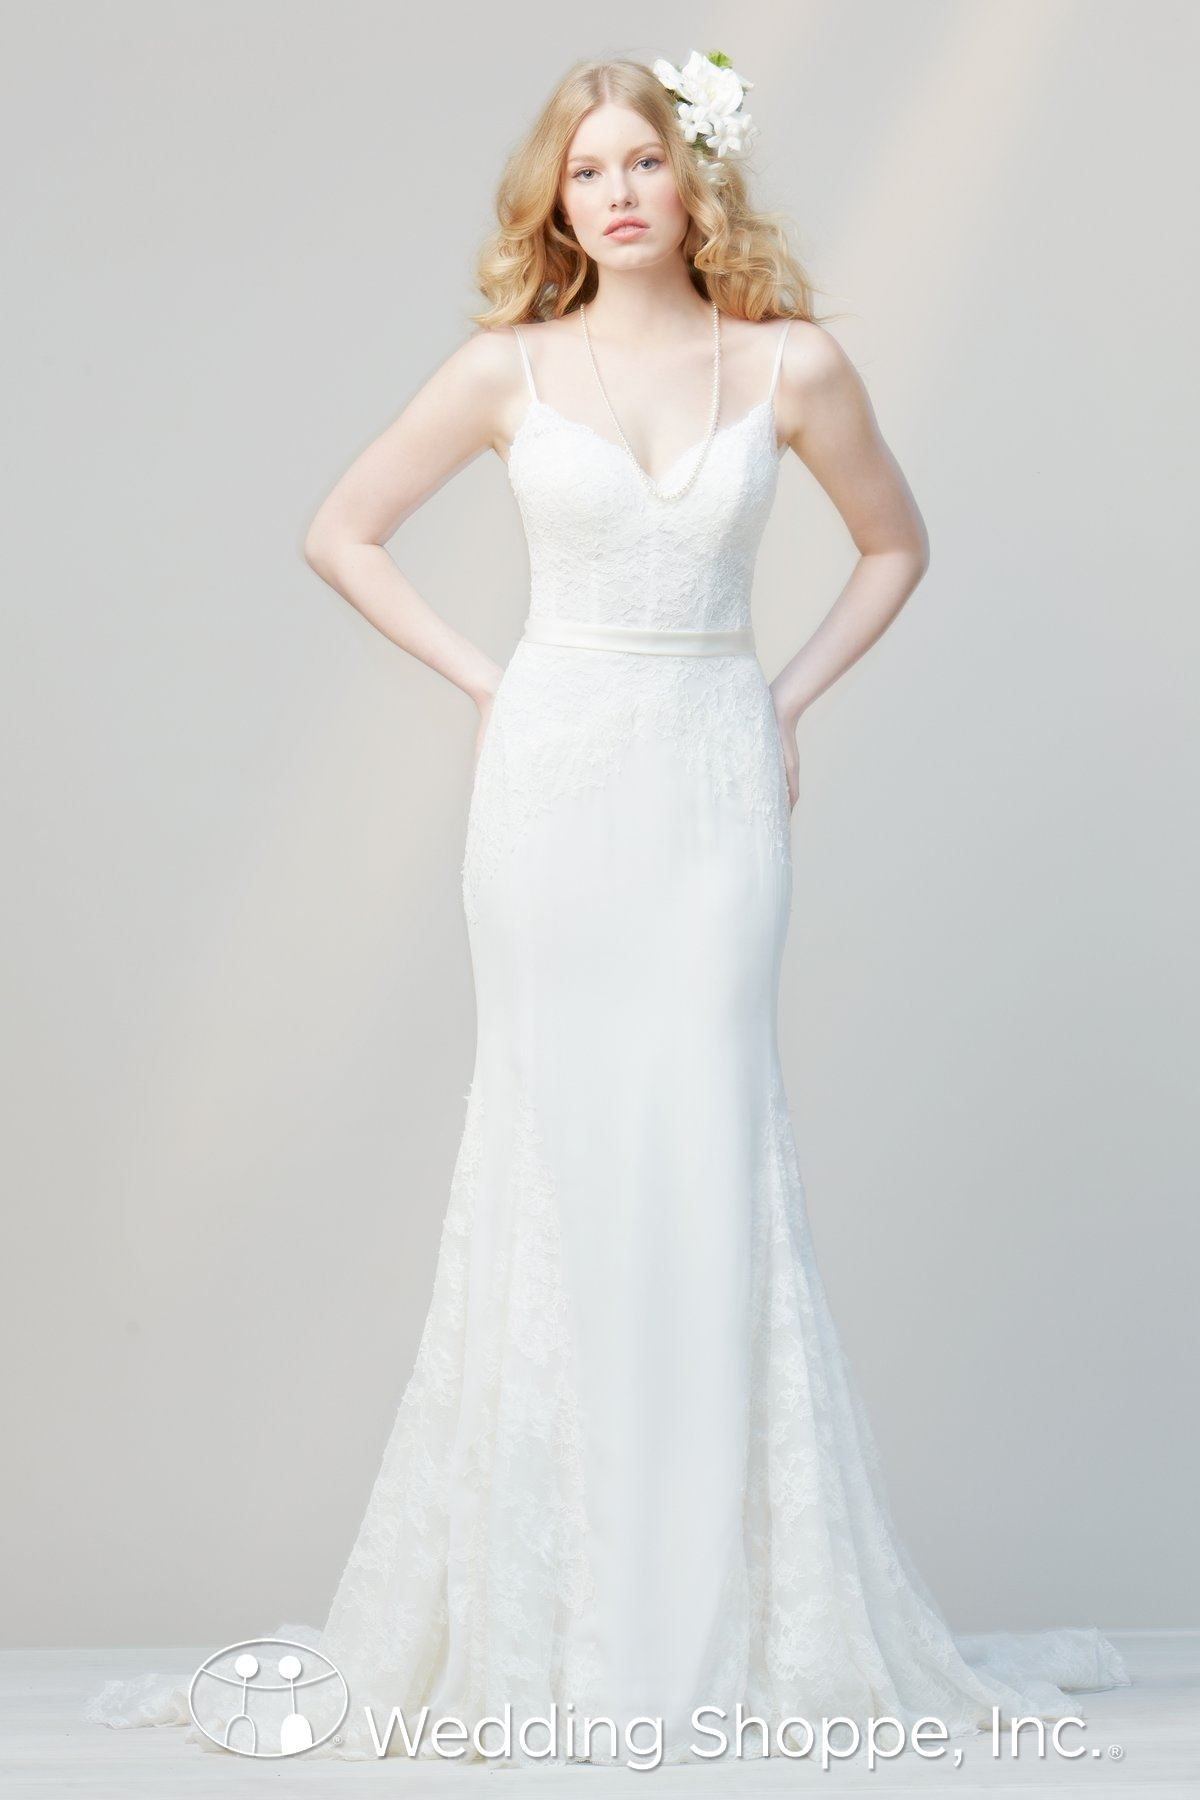 Love Marley by Watters Bridal Gown Katy / 52233, $699, Sz. 10 ...